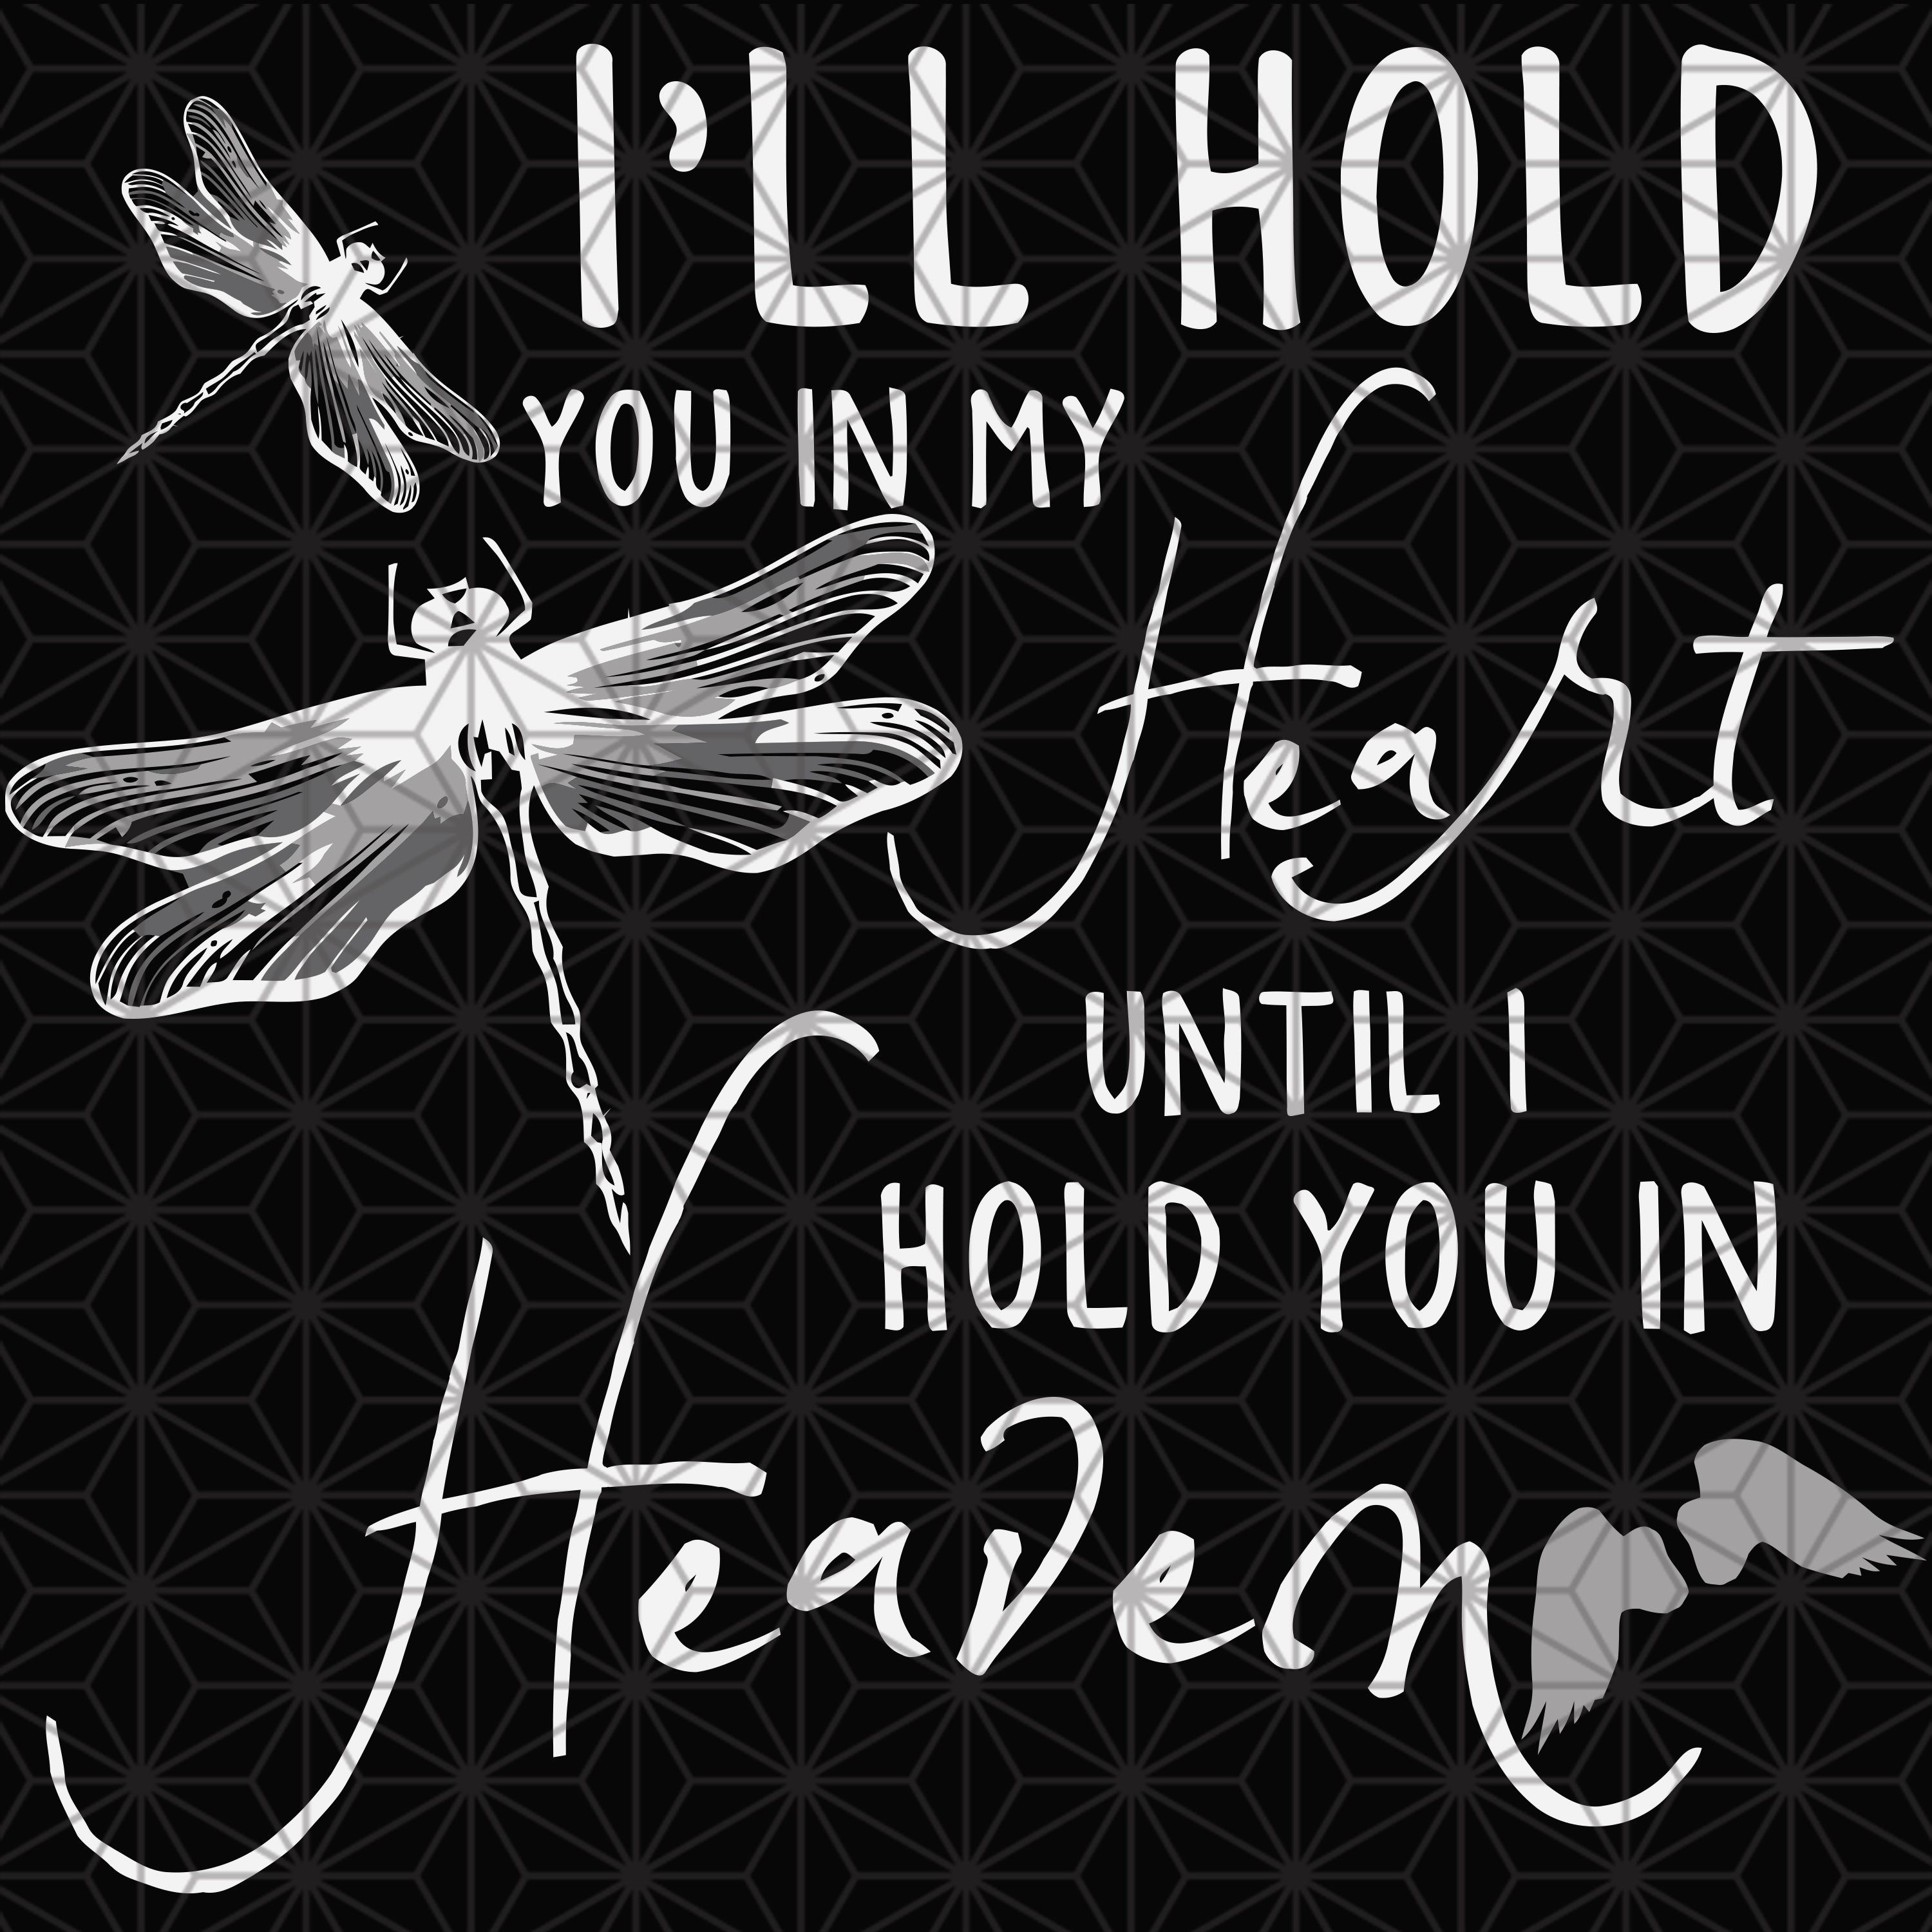 Download I will hold you in my heart, dragonfly svg, dragonfly ...